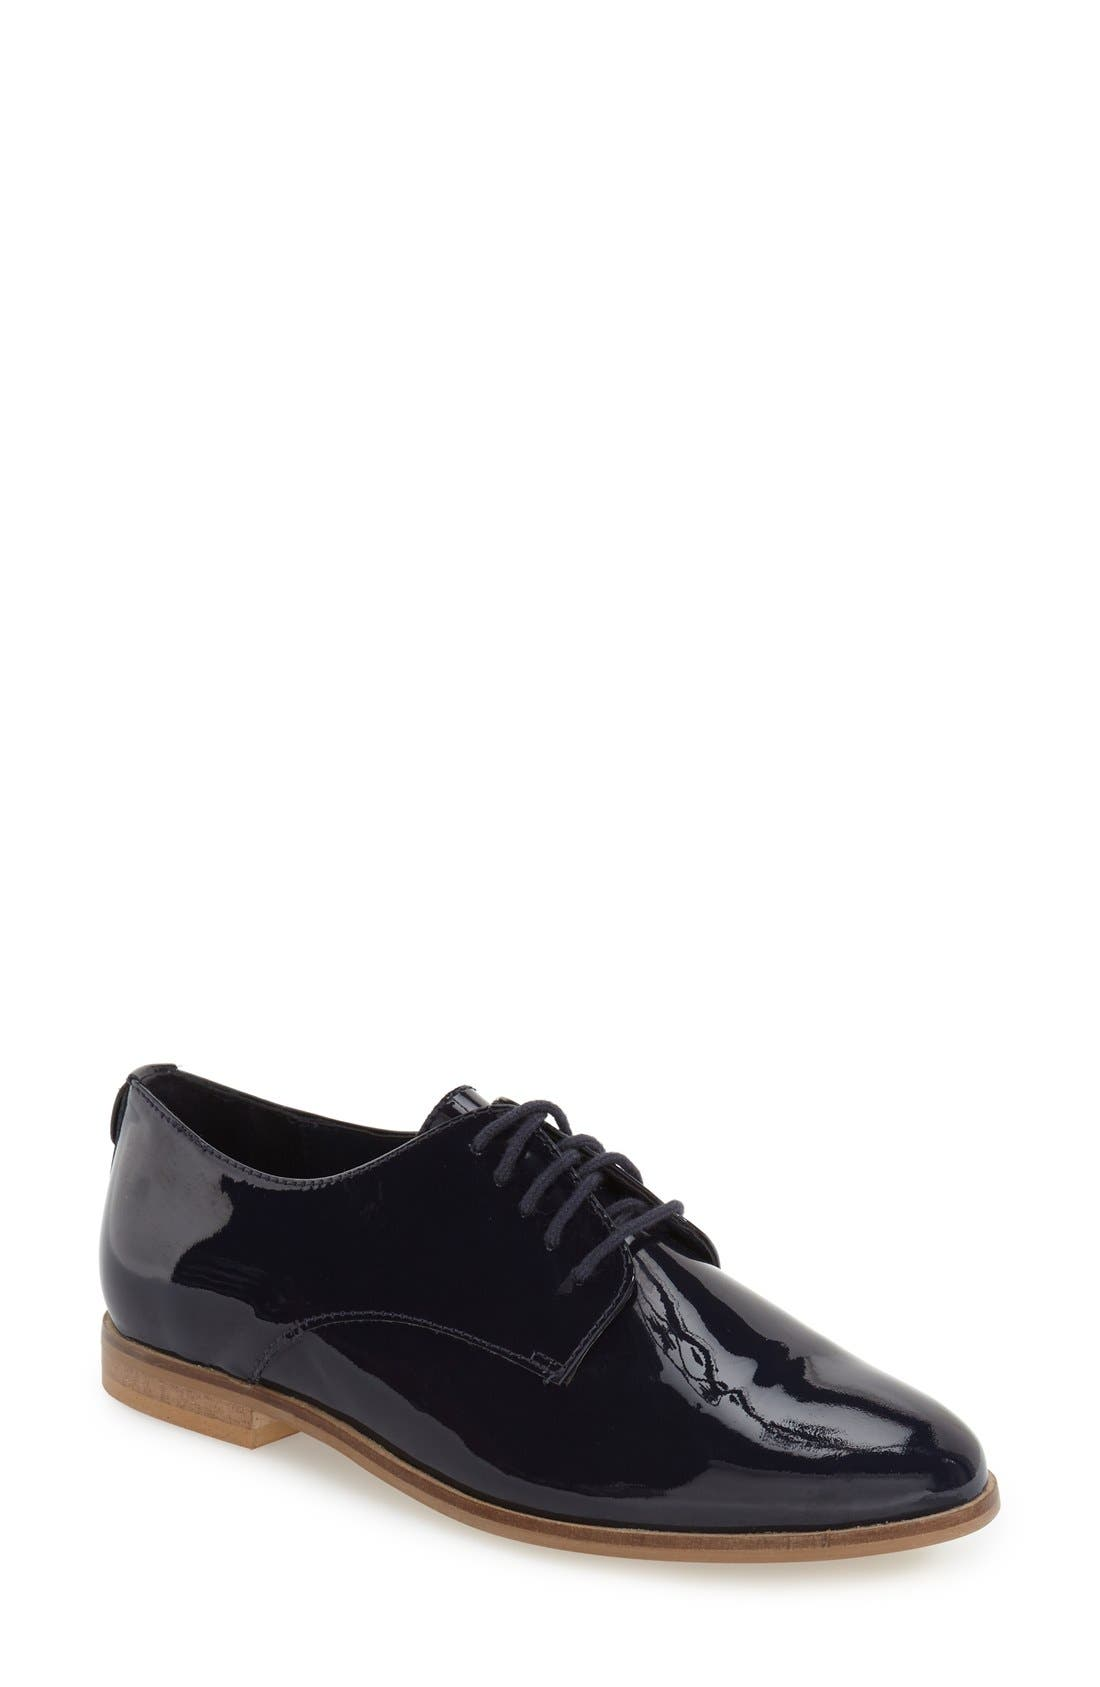 'Flossy' Patent Leather Oxford,                             Main thumbnail 1, color,                             Navy Patent Leather